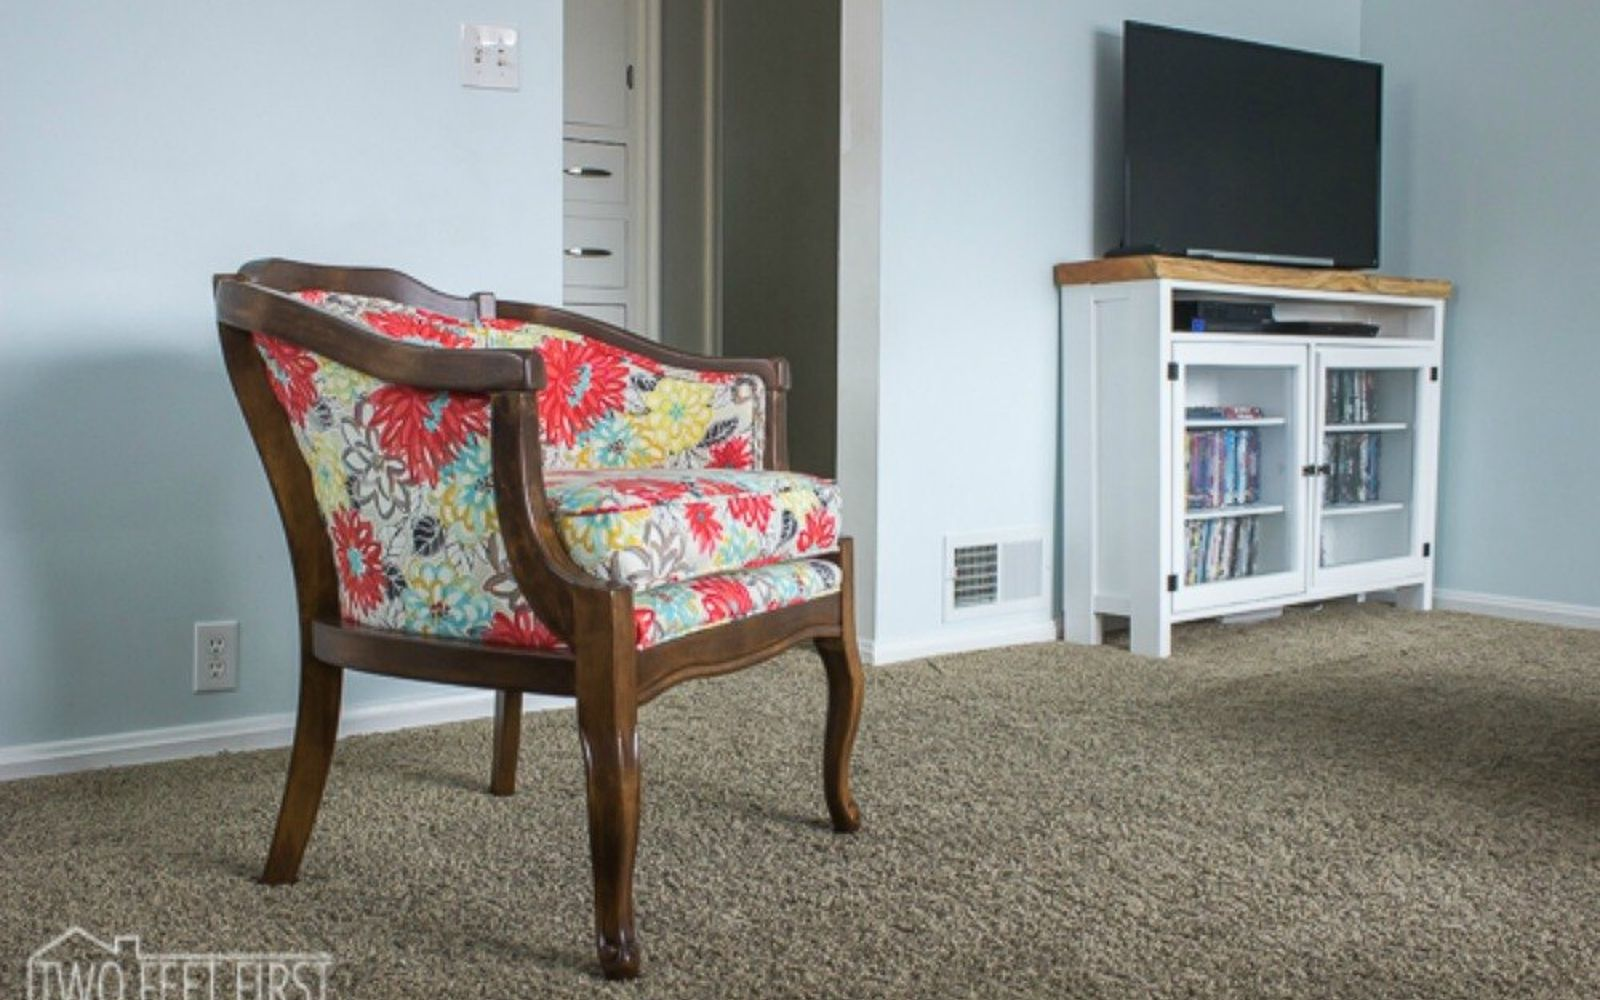 s decorate your living room for under 10 with these 15 ideas, Restore reupholster a thrift store chair